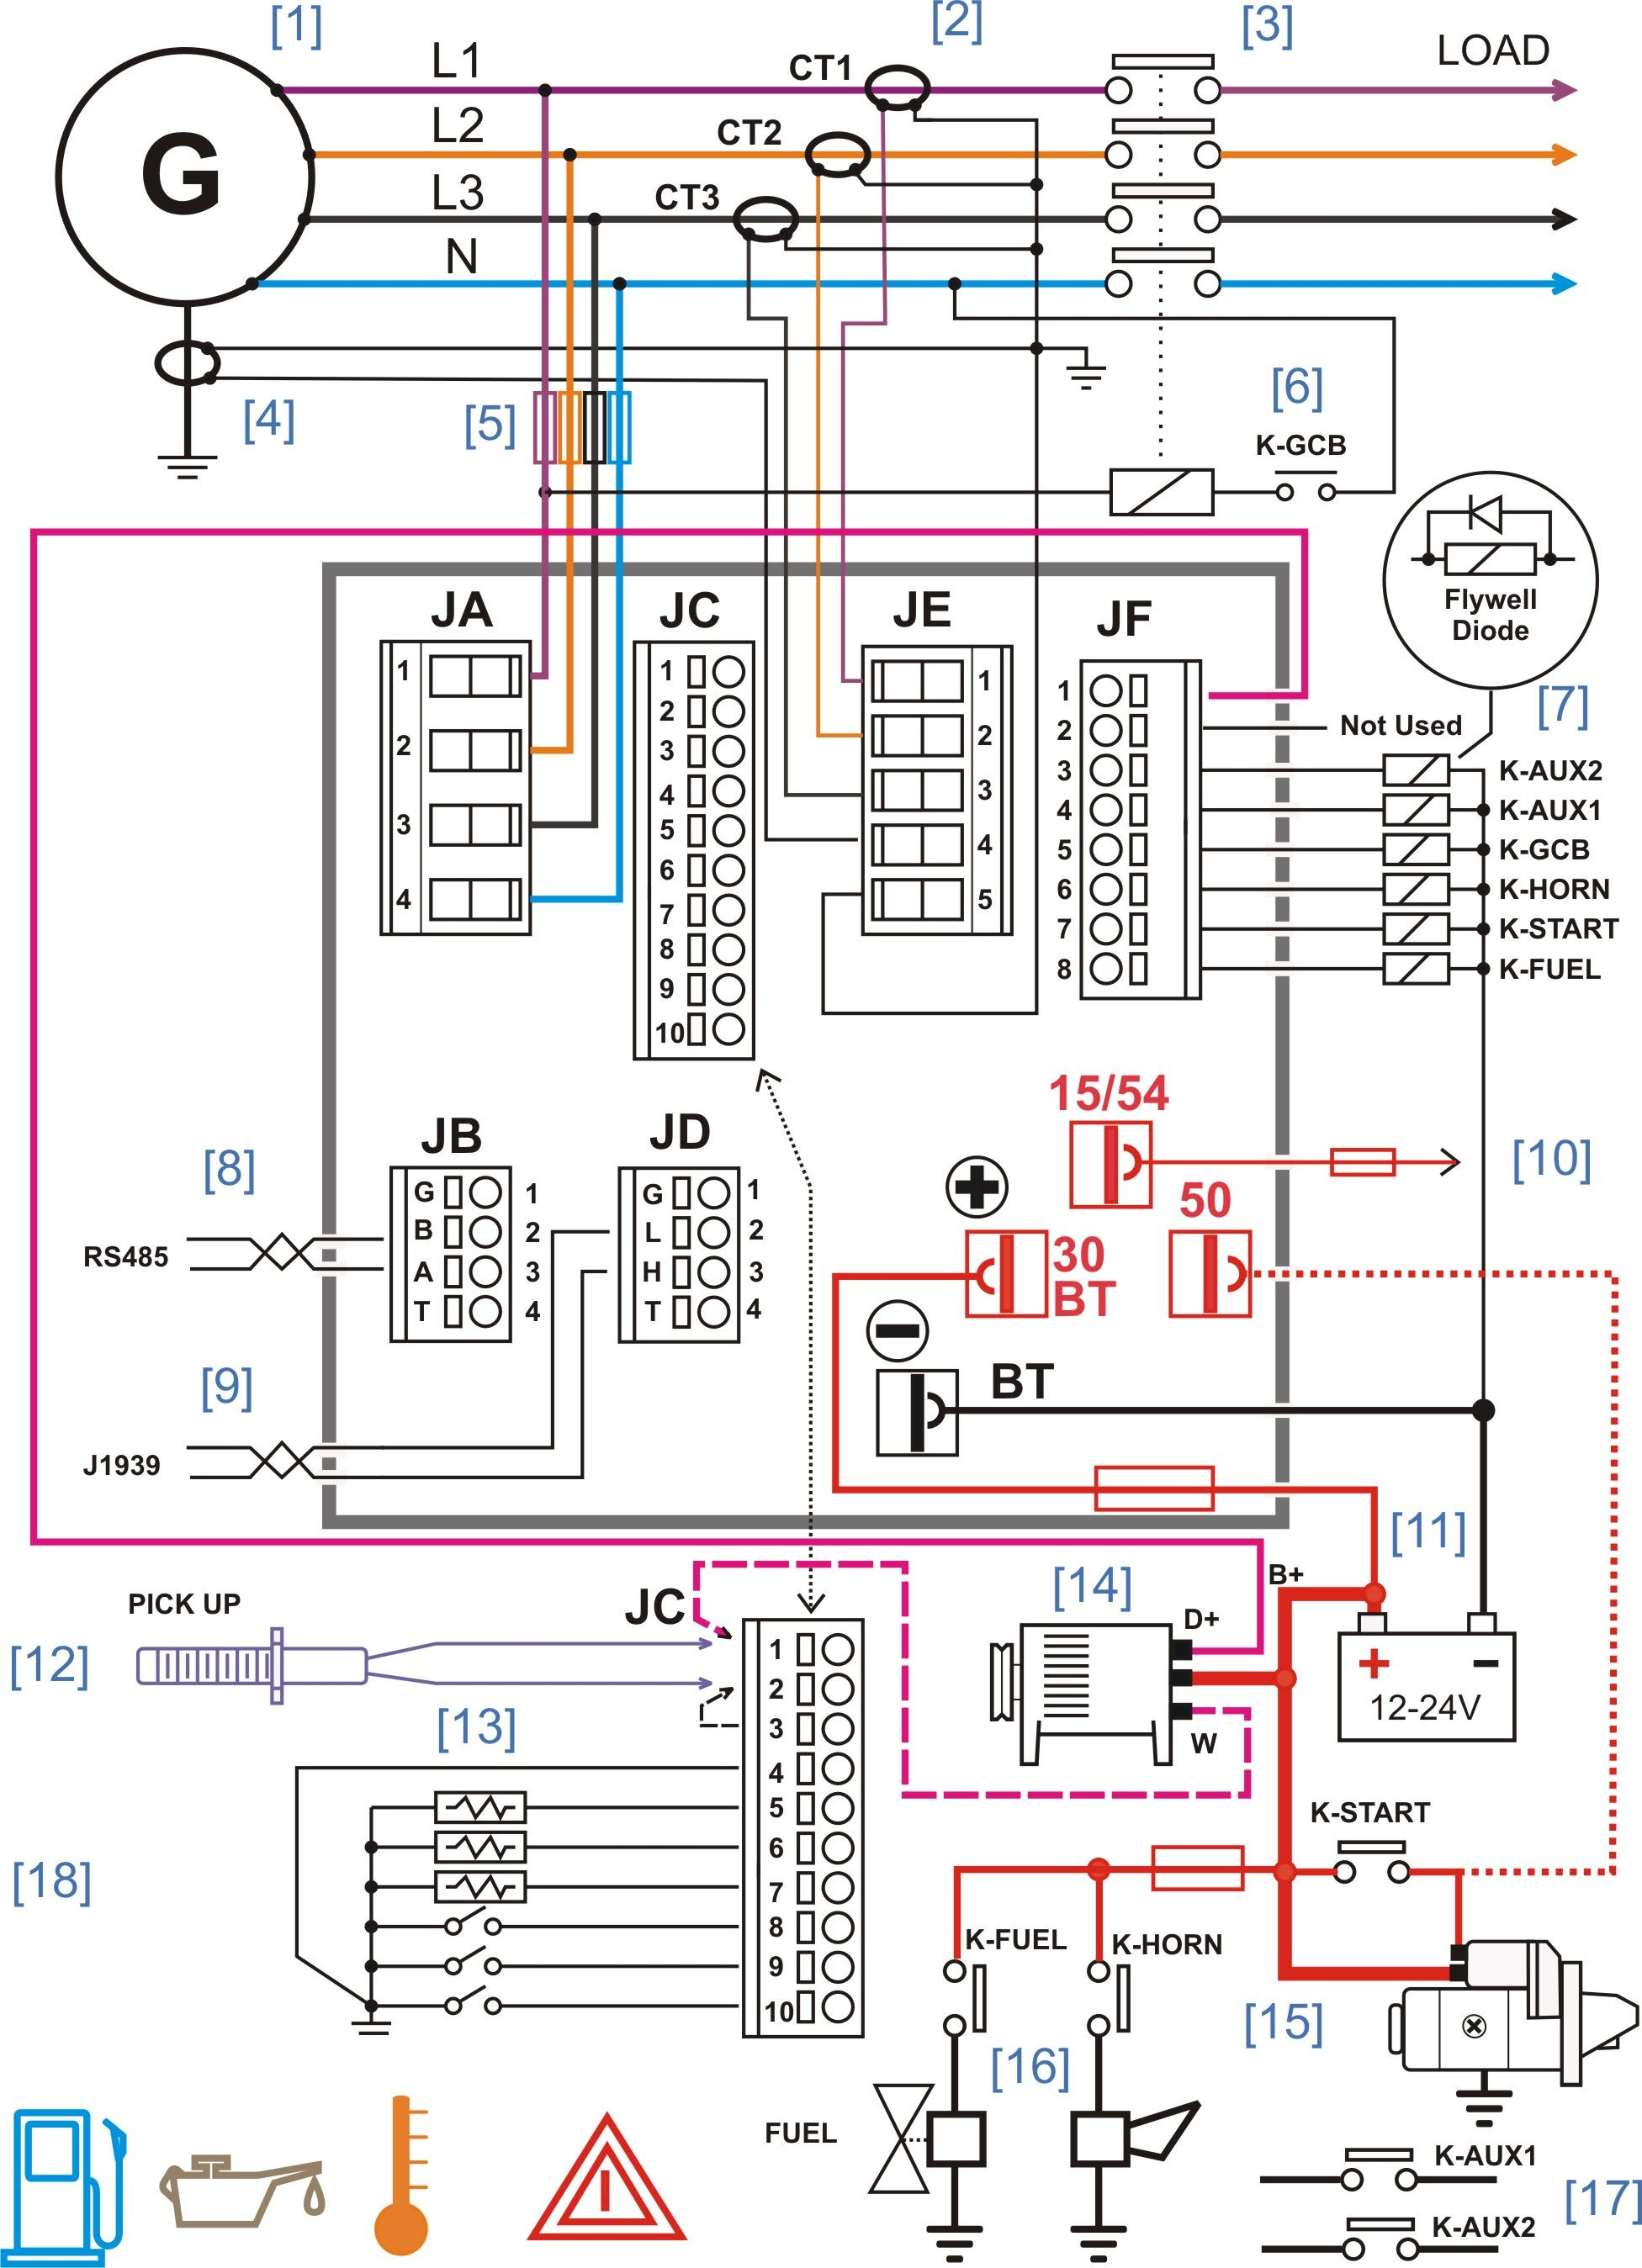 wrg 9599] full house wiring diagram  mth ho wiring diagrams #14